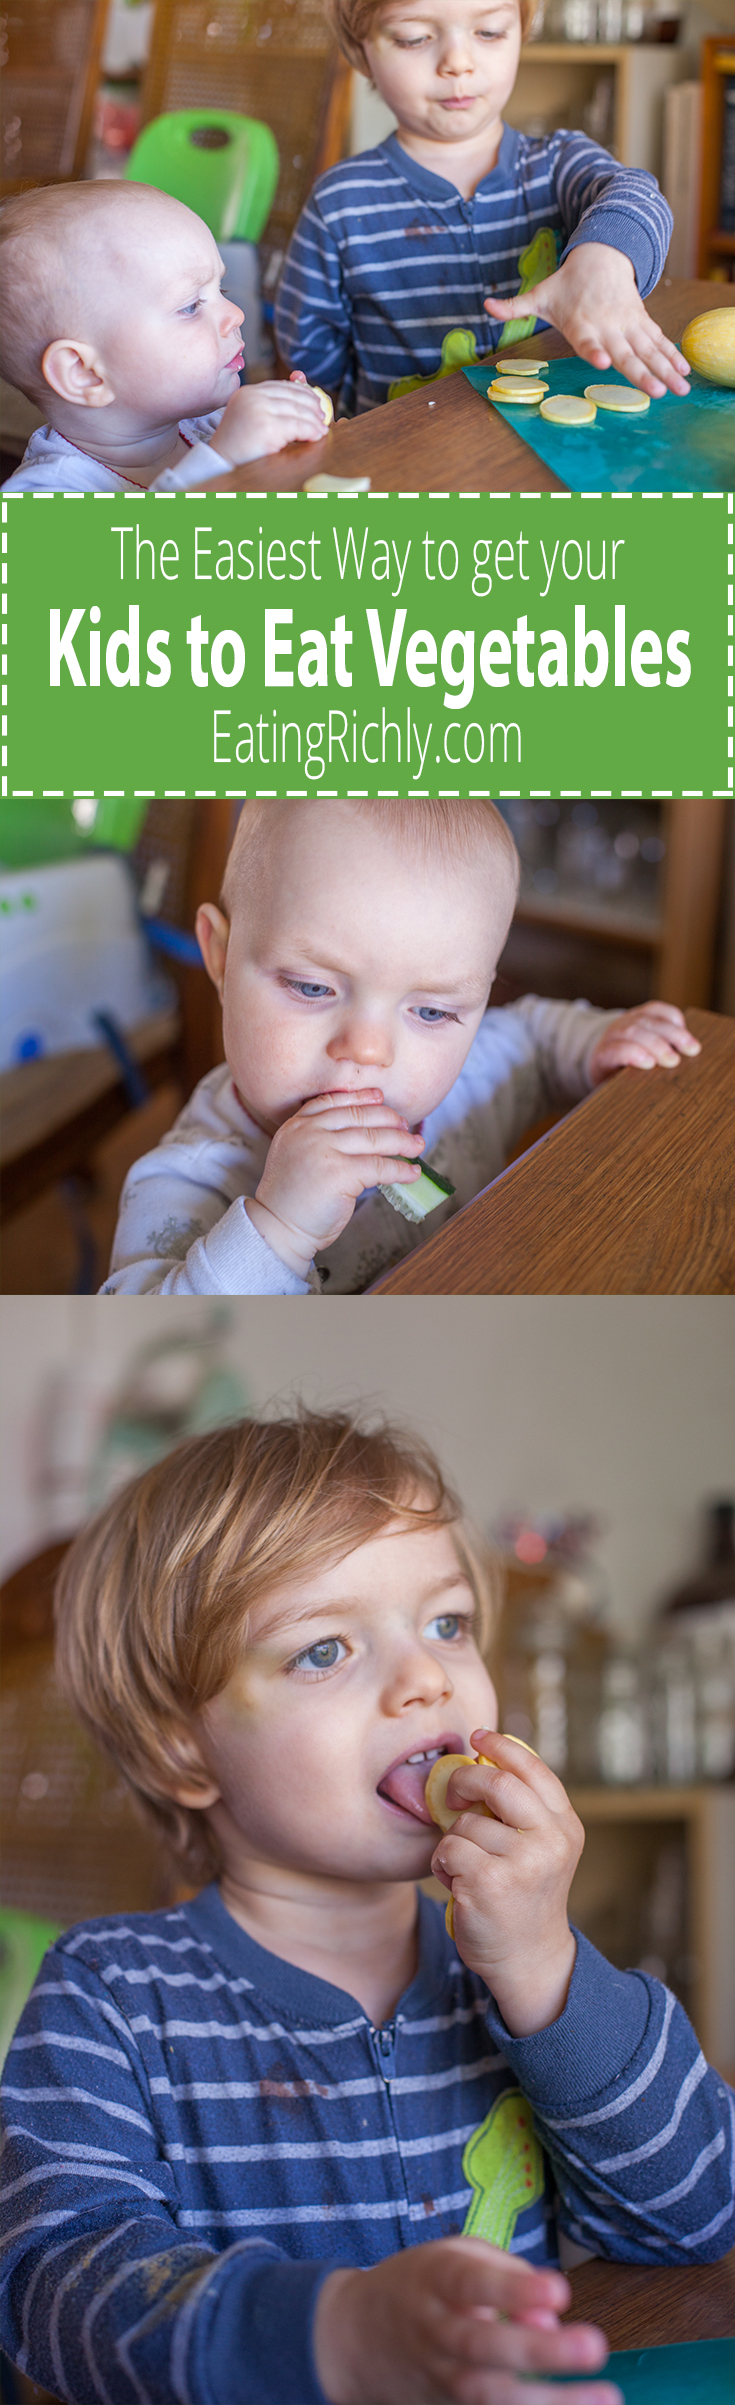 Have a kid who turns their nose up at veggies? Here's one of the easiest way to encourage fruits and vegetables for kids who tend to who refuse them. From EatingRichly.com